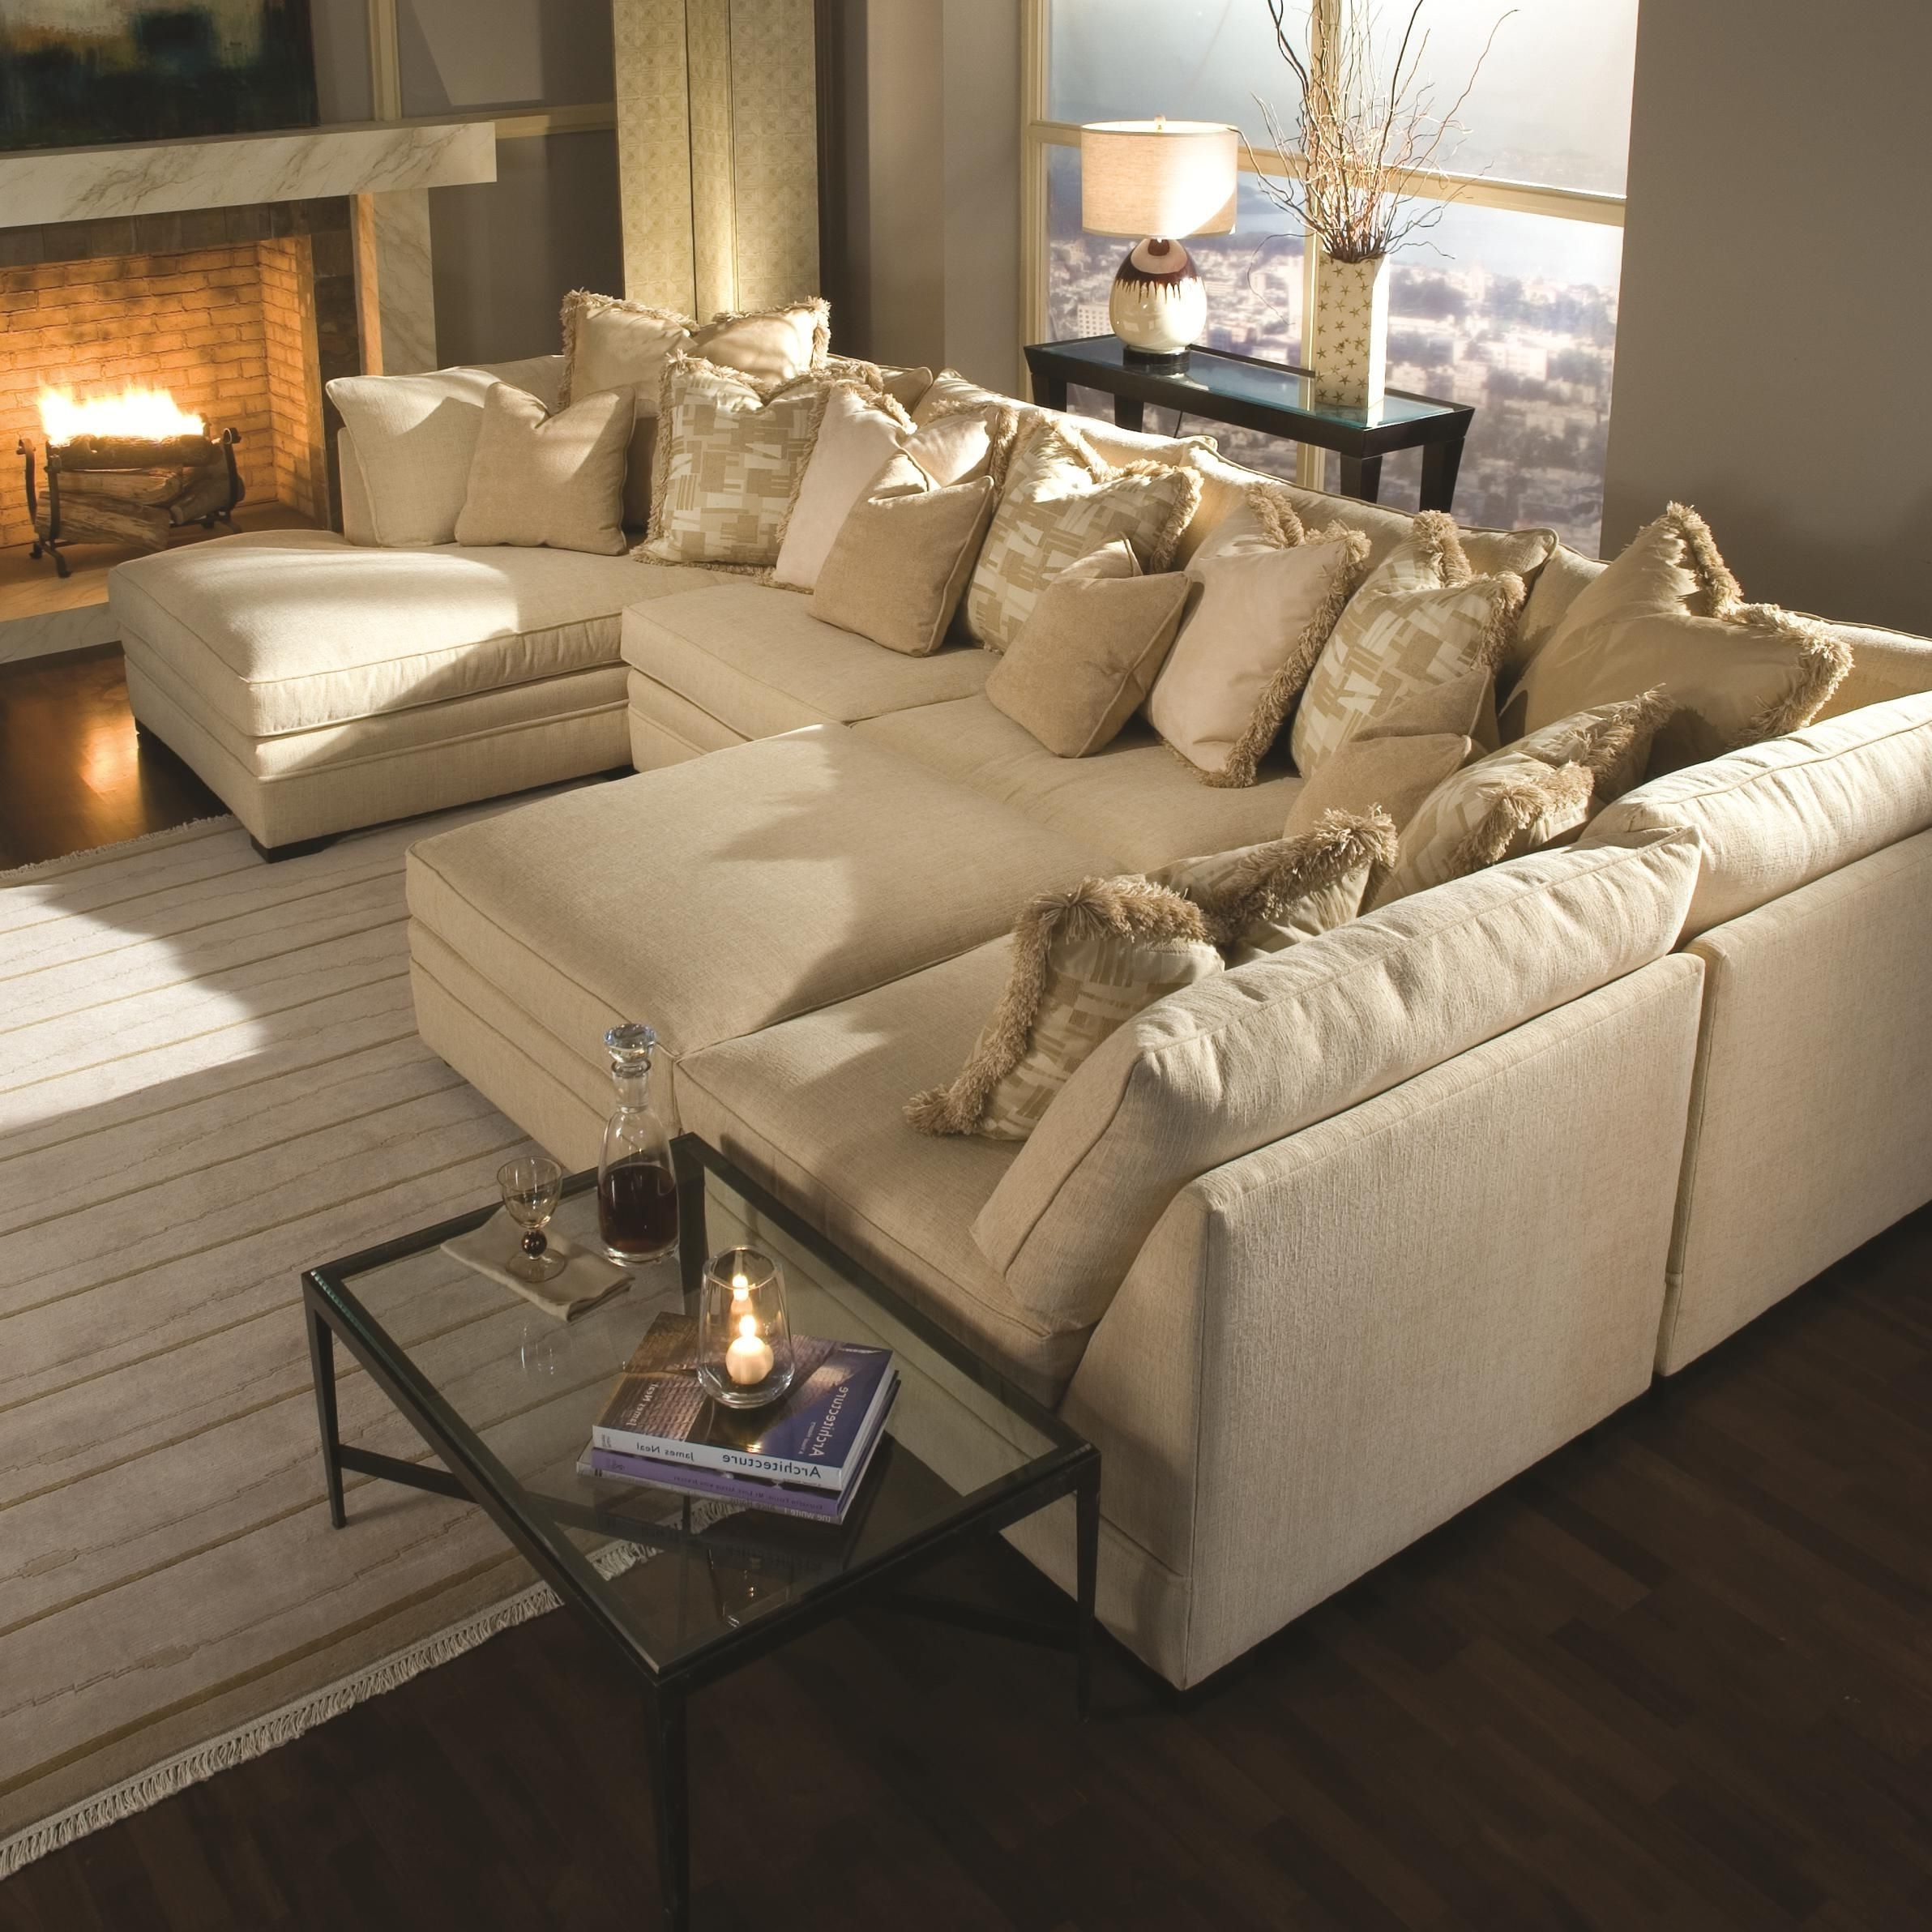 Huge U Shaped Sectionals Throughout Fashionable Large Brown Leather U Shaped Sofa – Google Search (View 7 of 15)